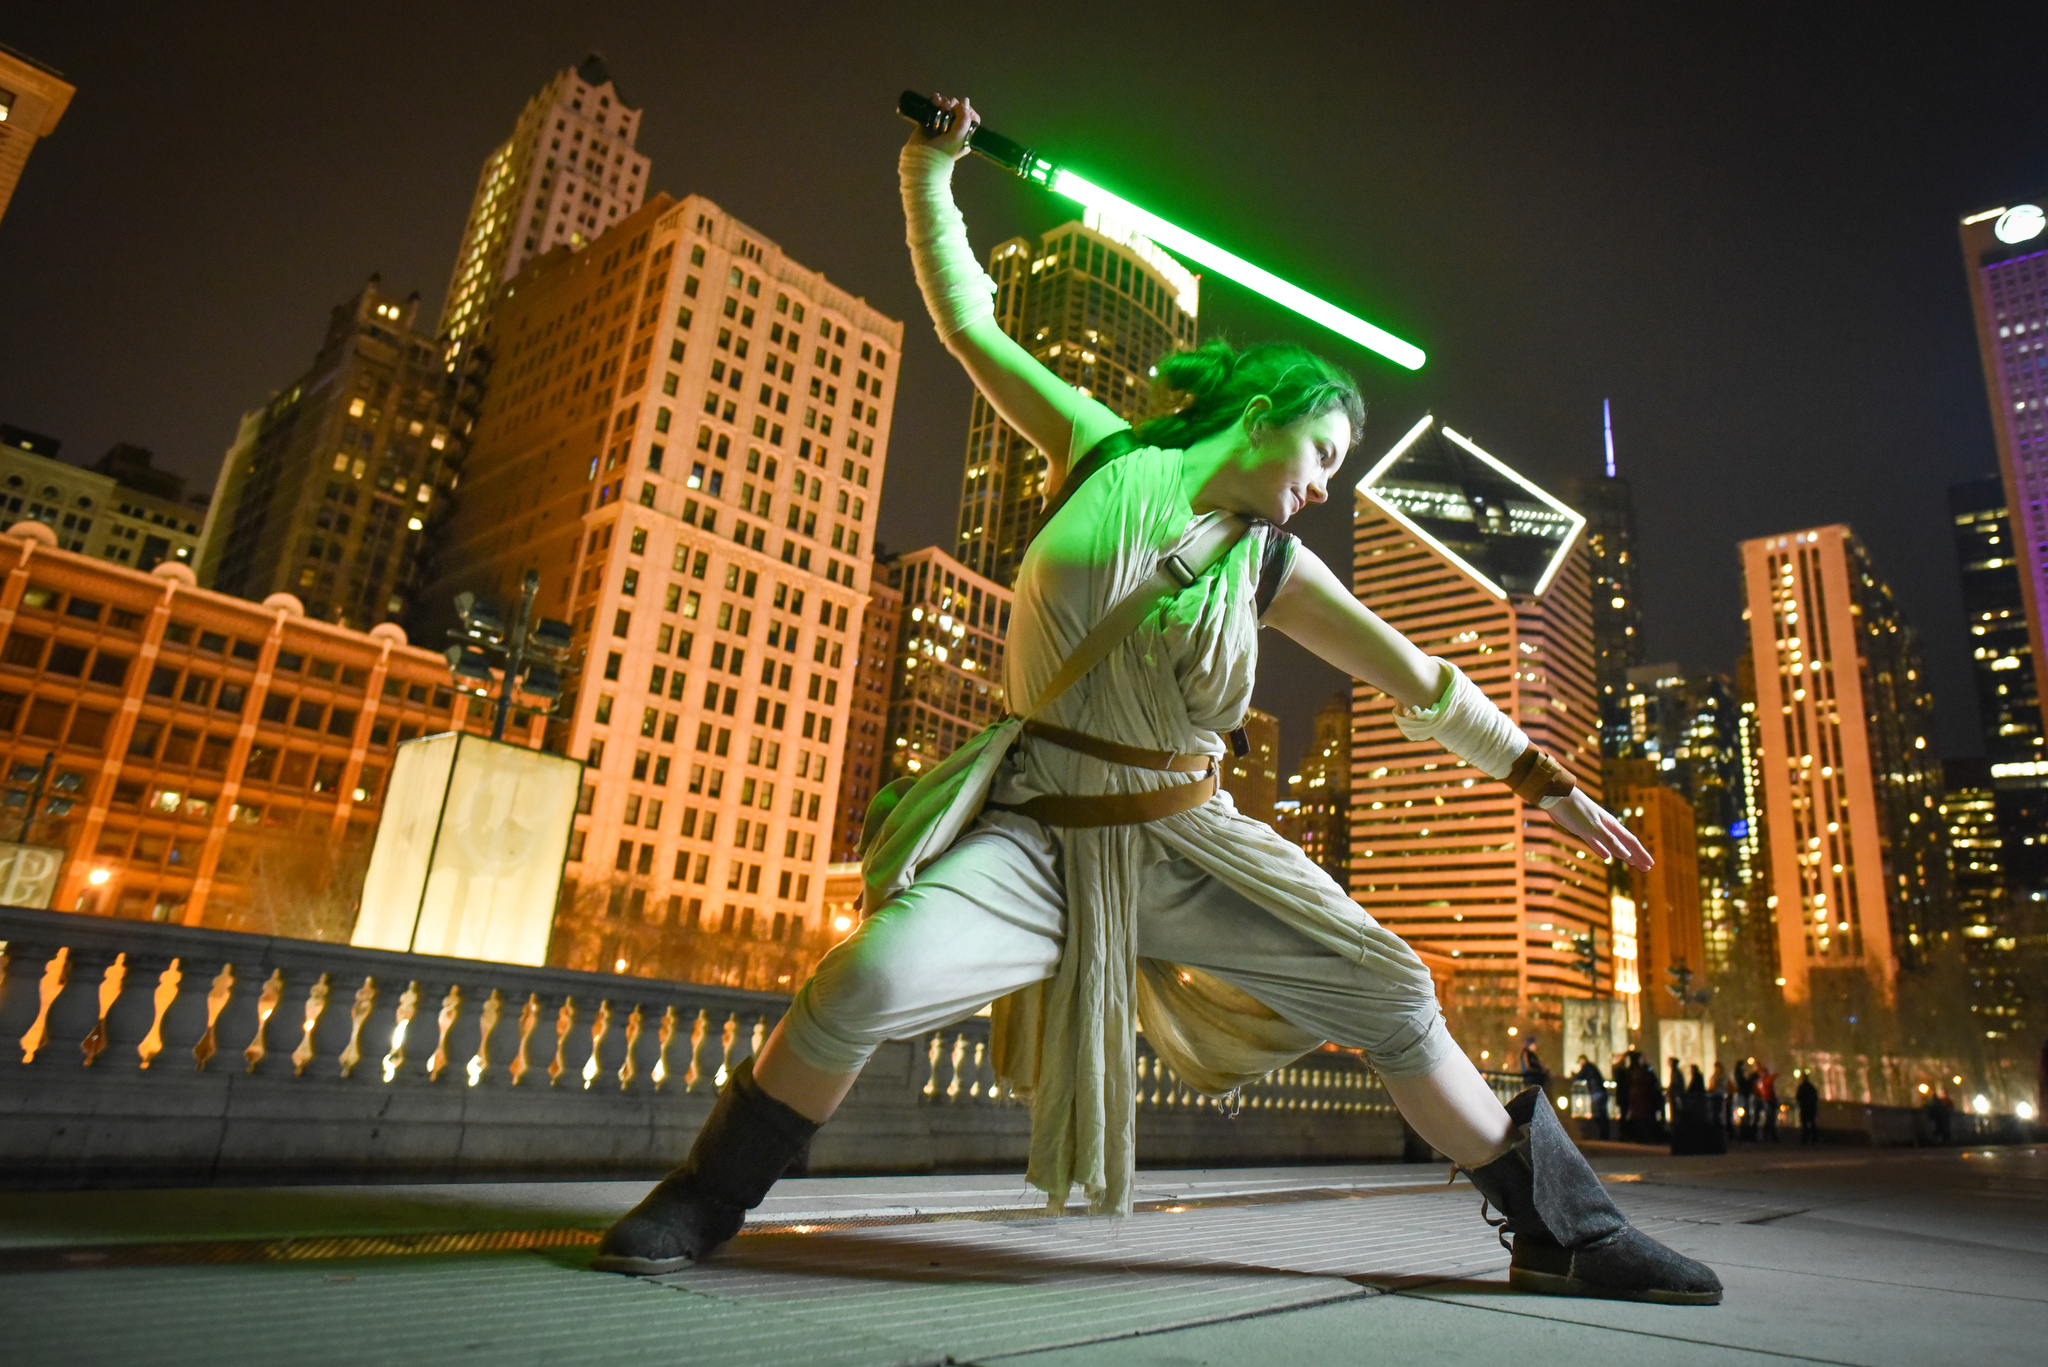 2019.04.14 - Star Wars Celebration Chicago 288895.JPG